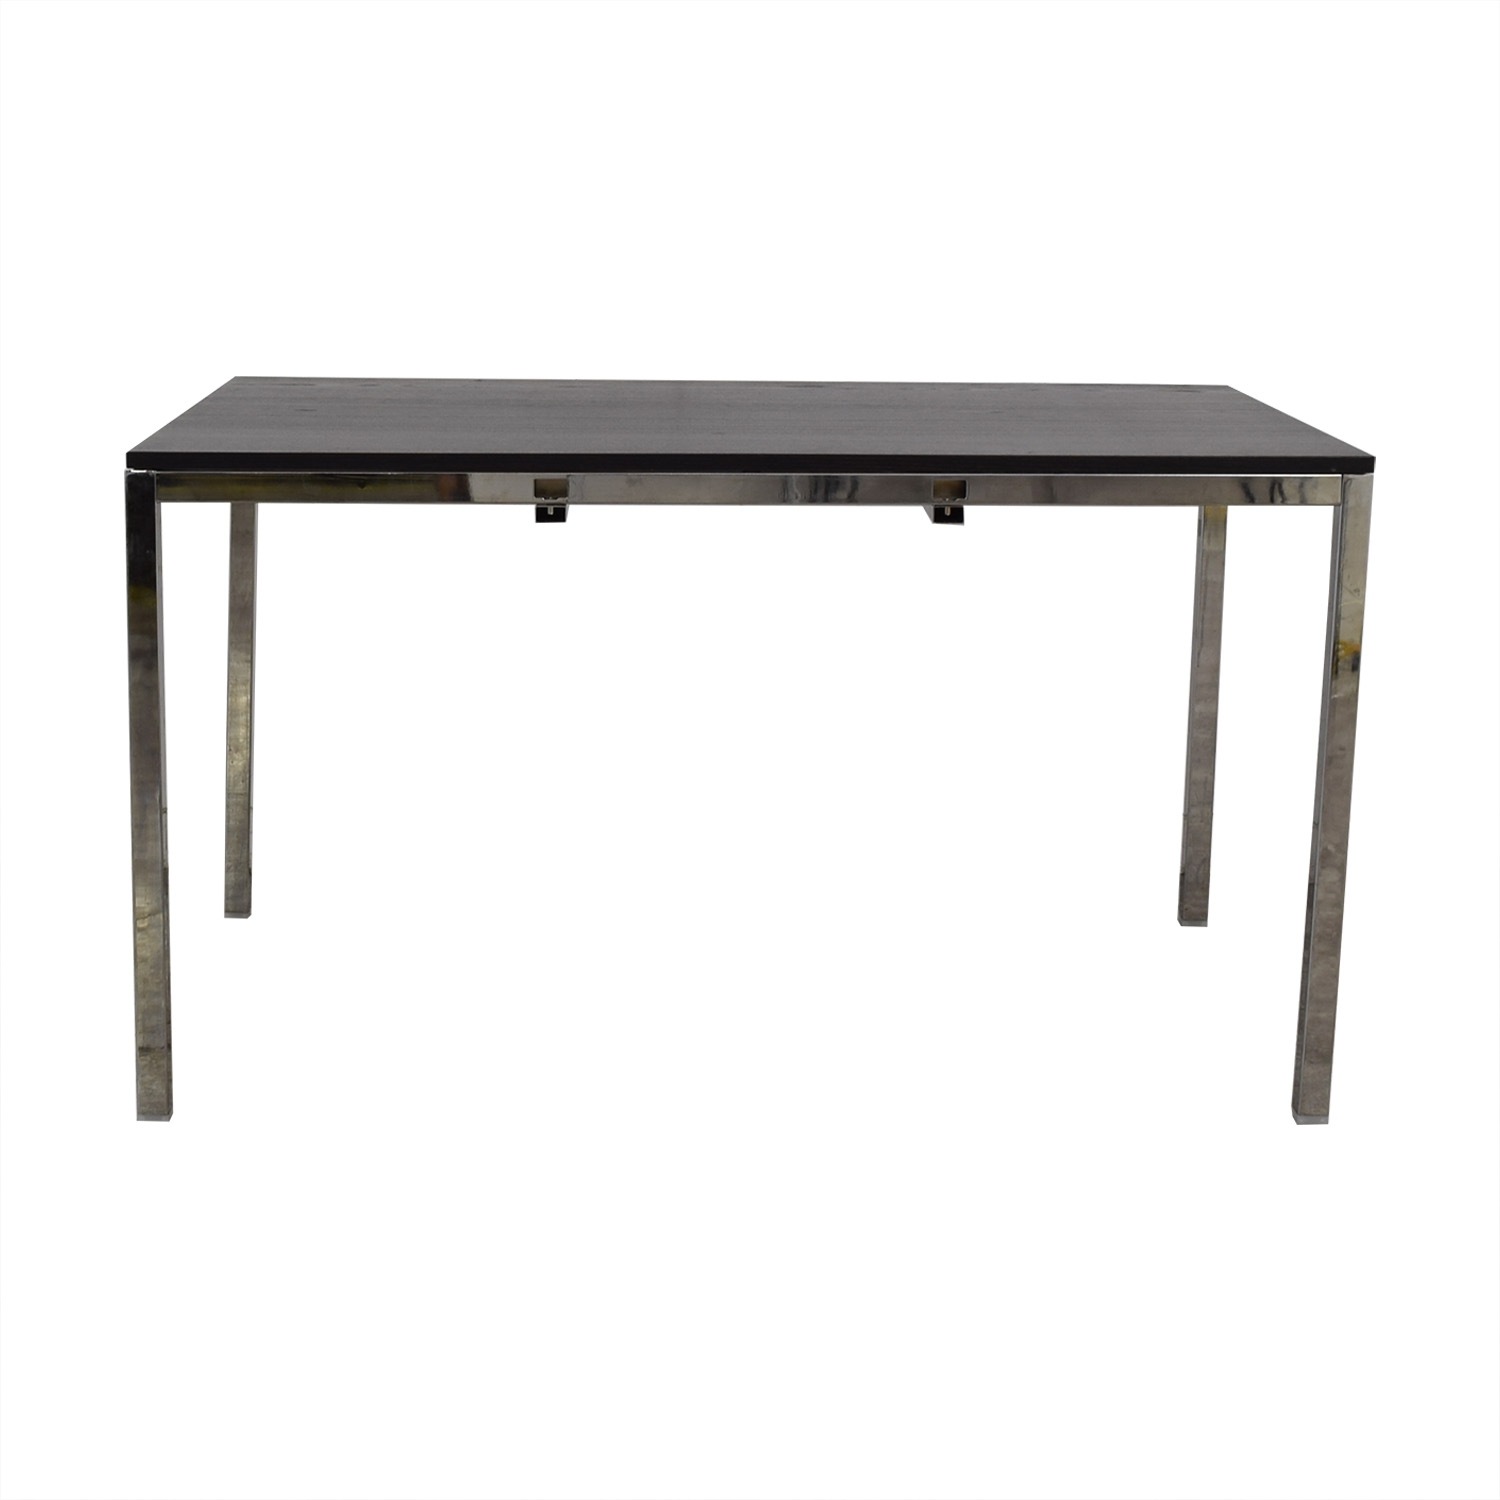 Ashley Furniture Ashley Furniture Dining Table for sale